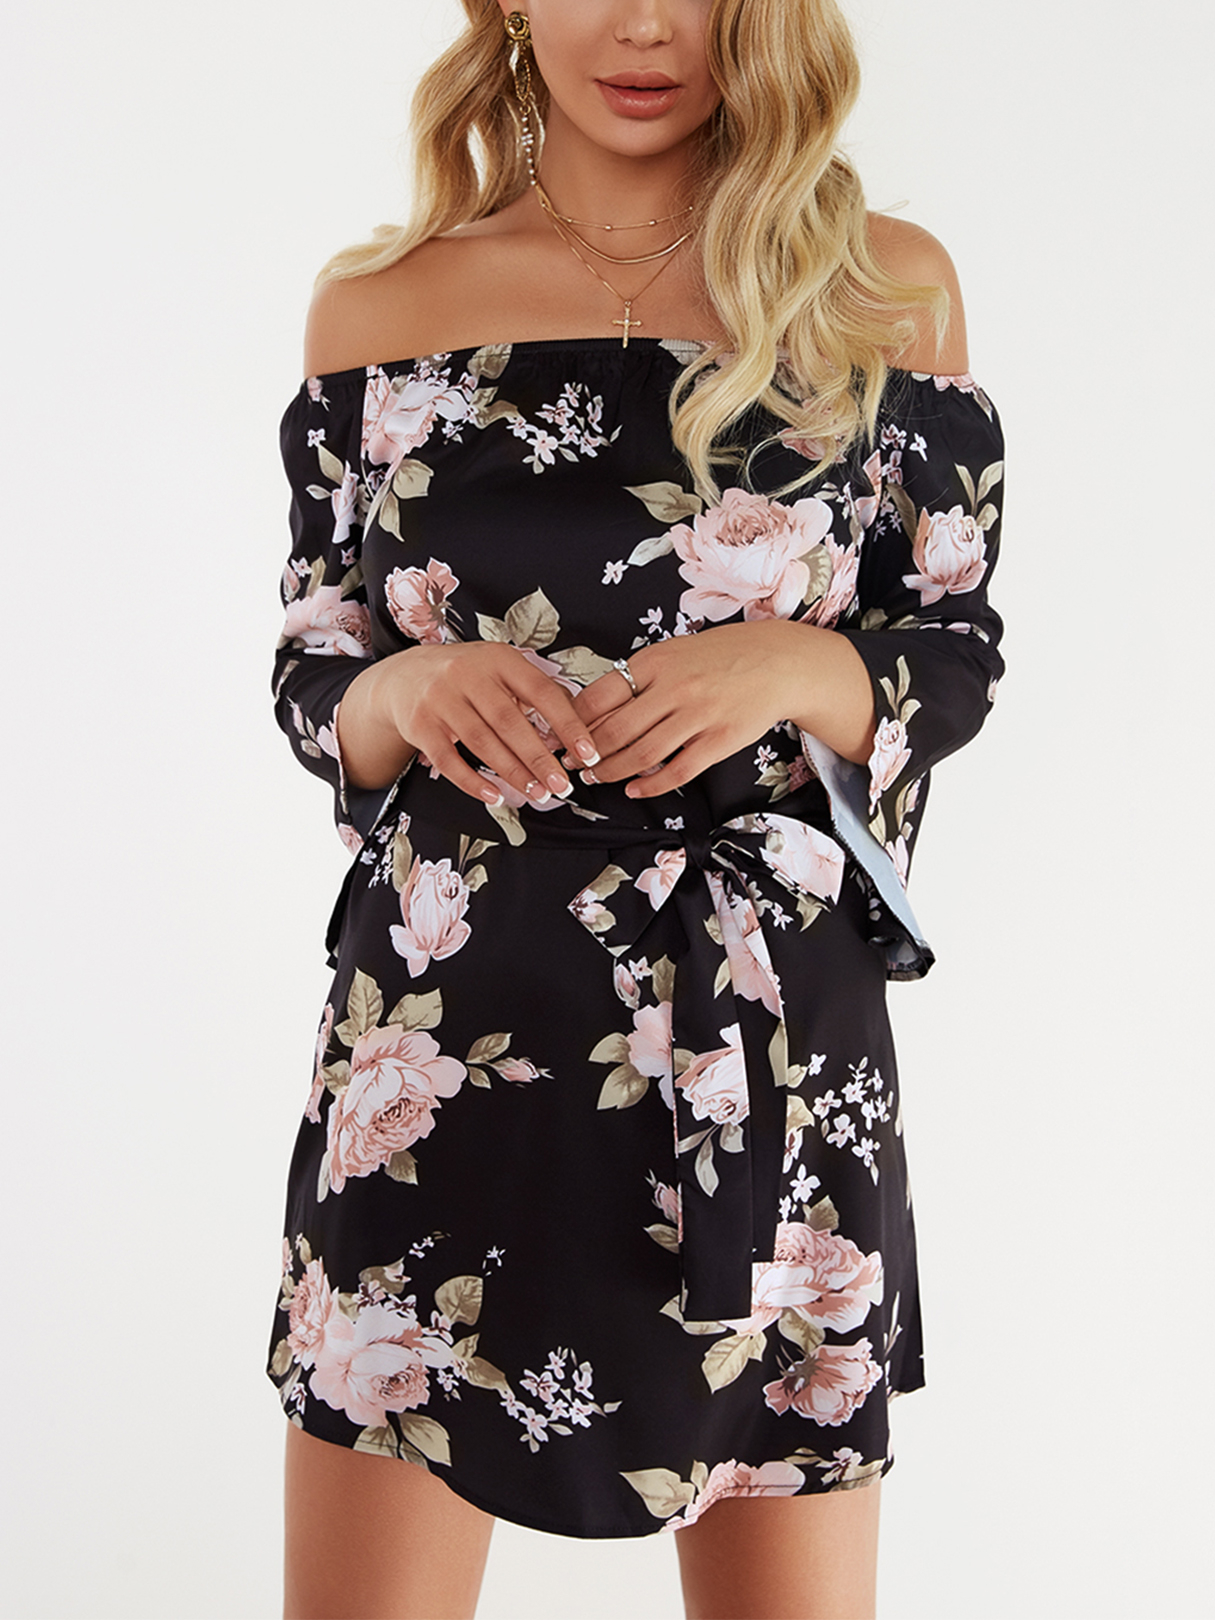 Black Lace-up Design Floral Print Off The Shoulder Long Sleeves High-waisted Dress trendy floral print off the shoulder mini dress for women